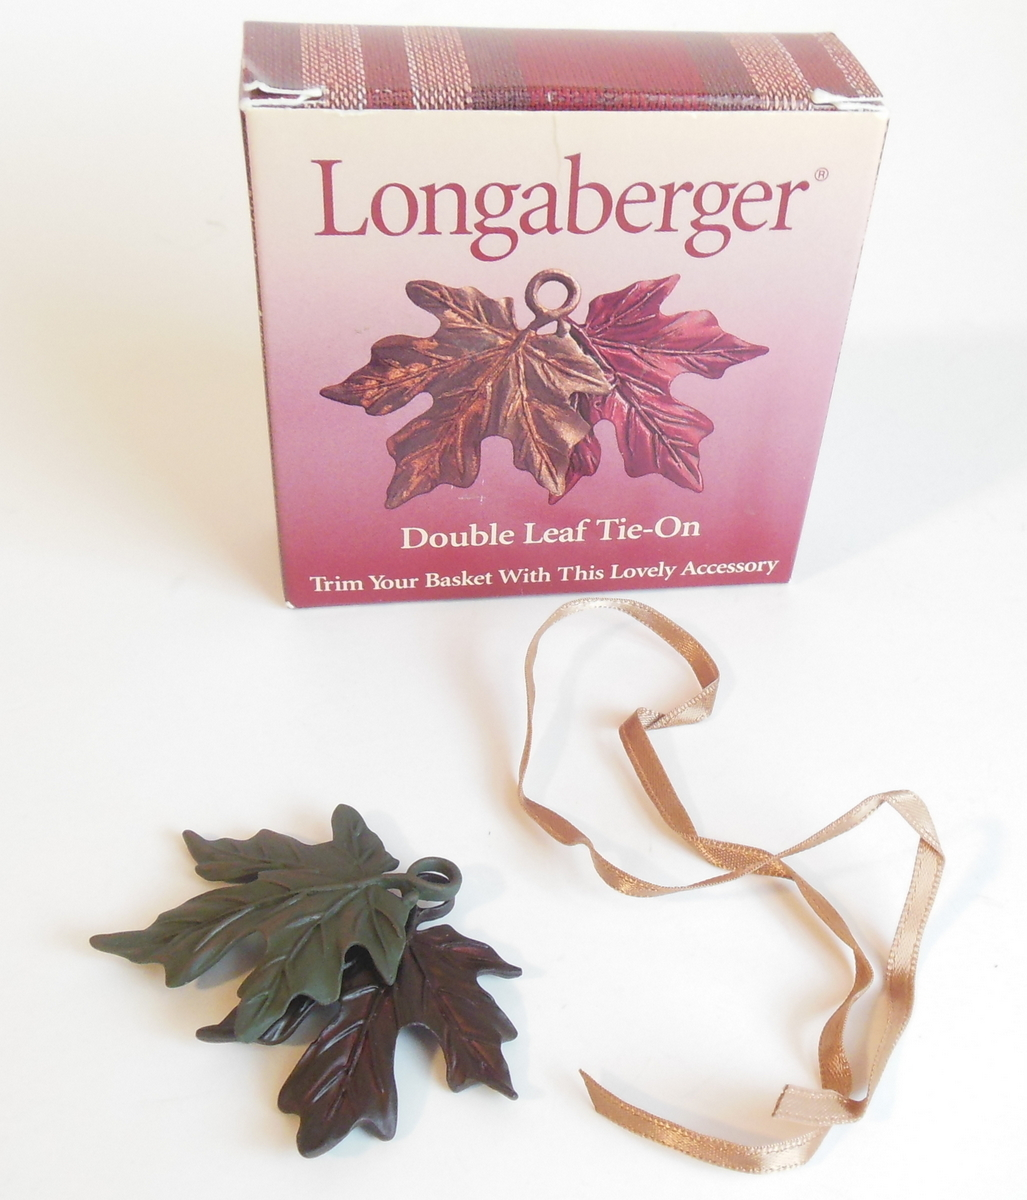 Longaberger Double Leaf Tie On Decorative Accessory Basket Autumn Fall Motif